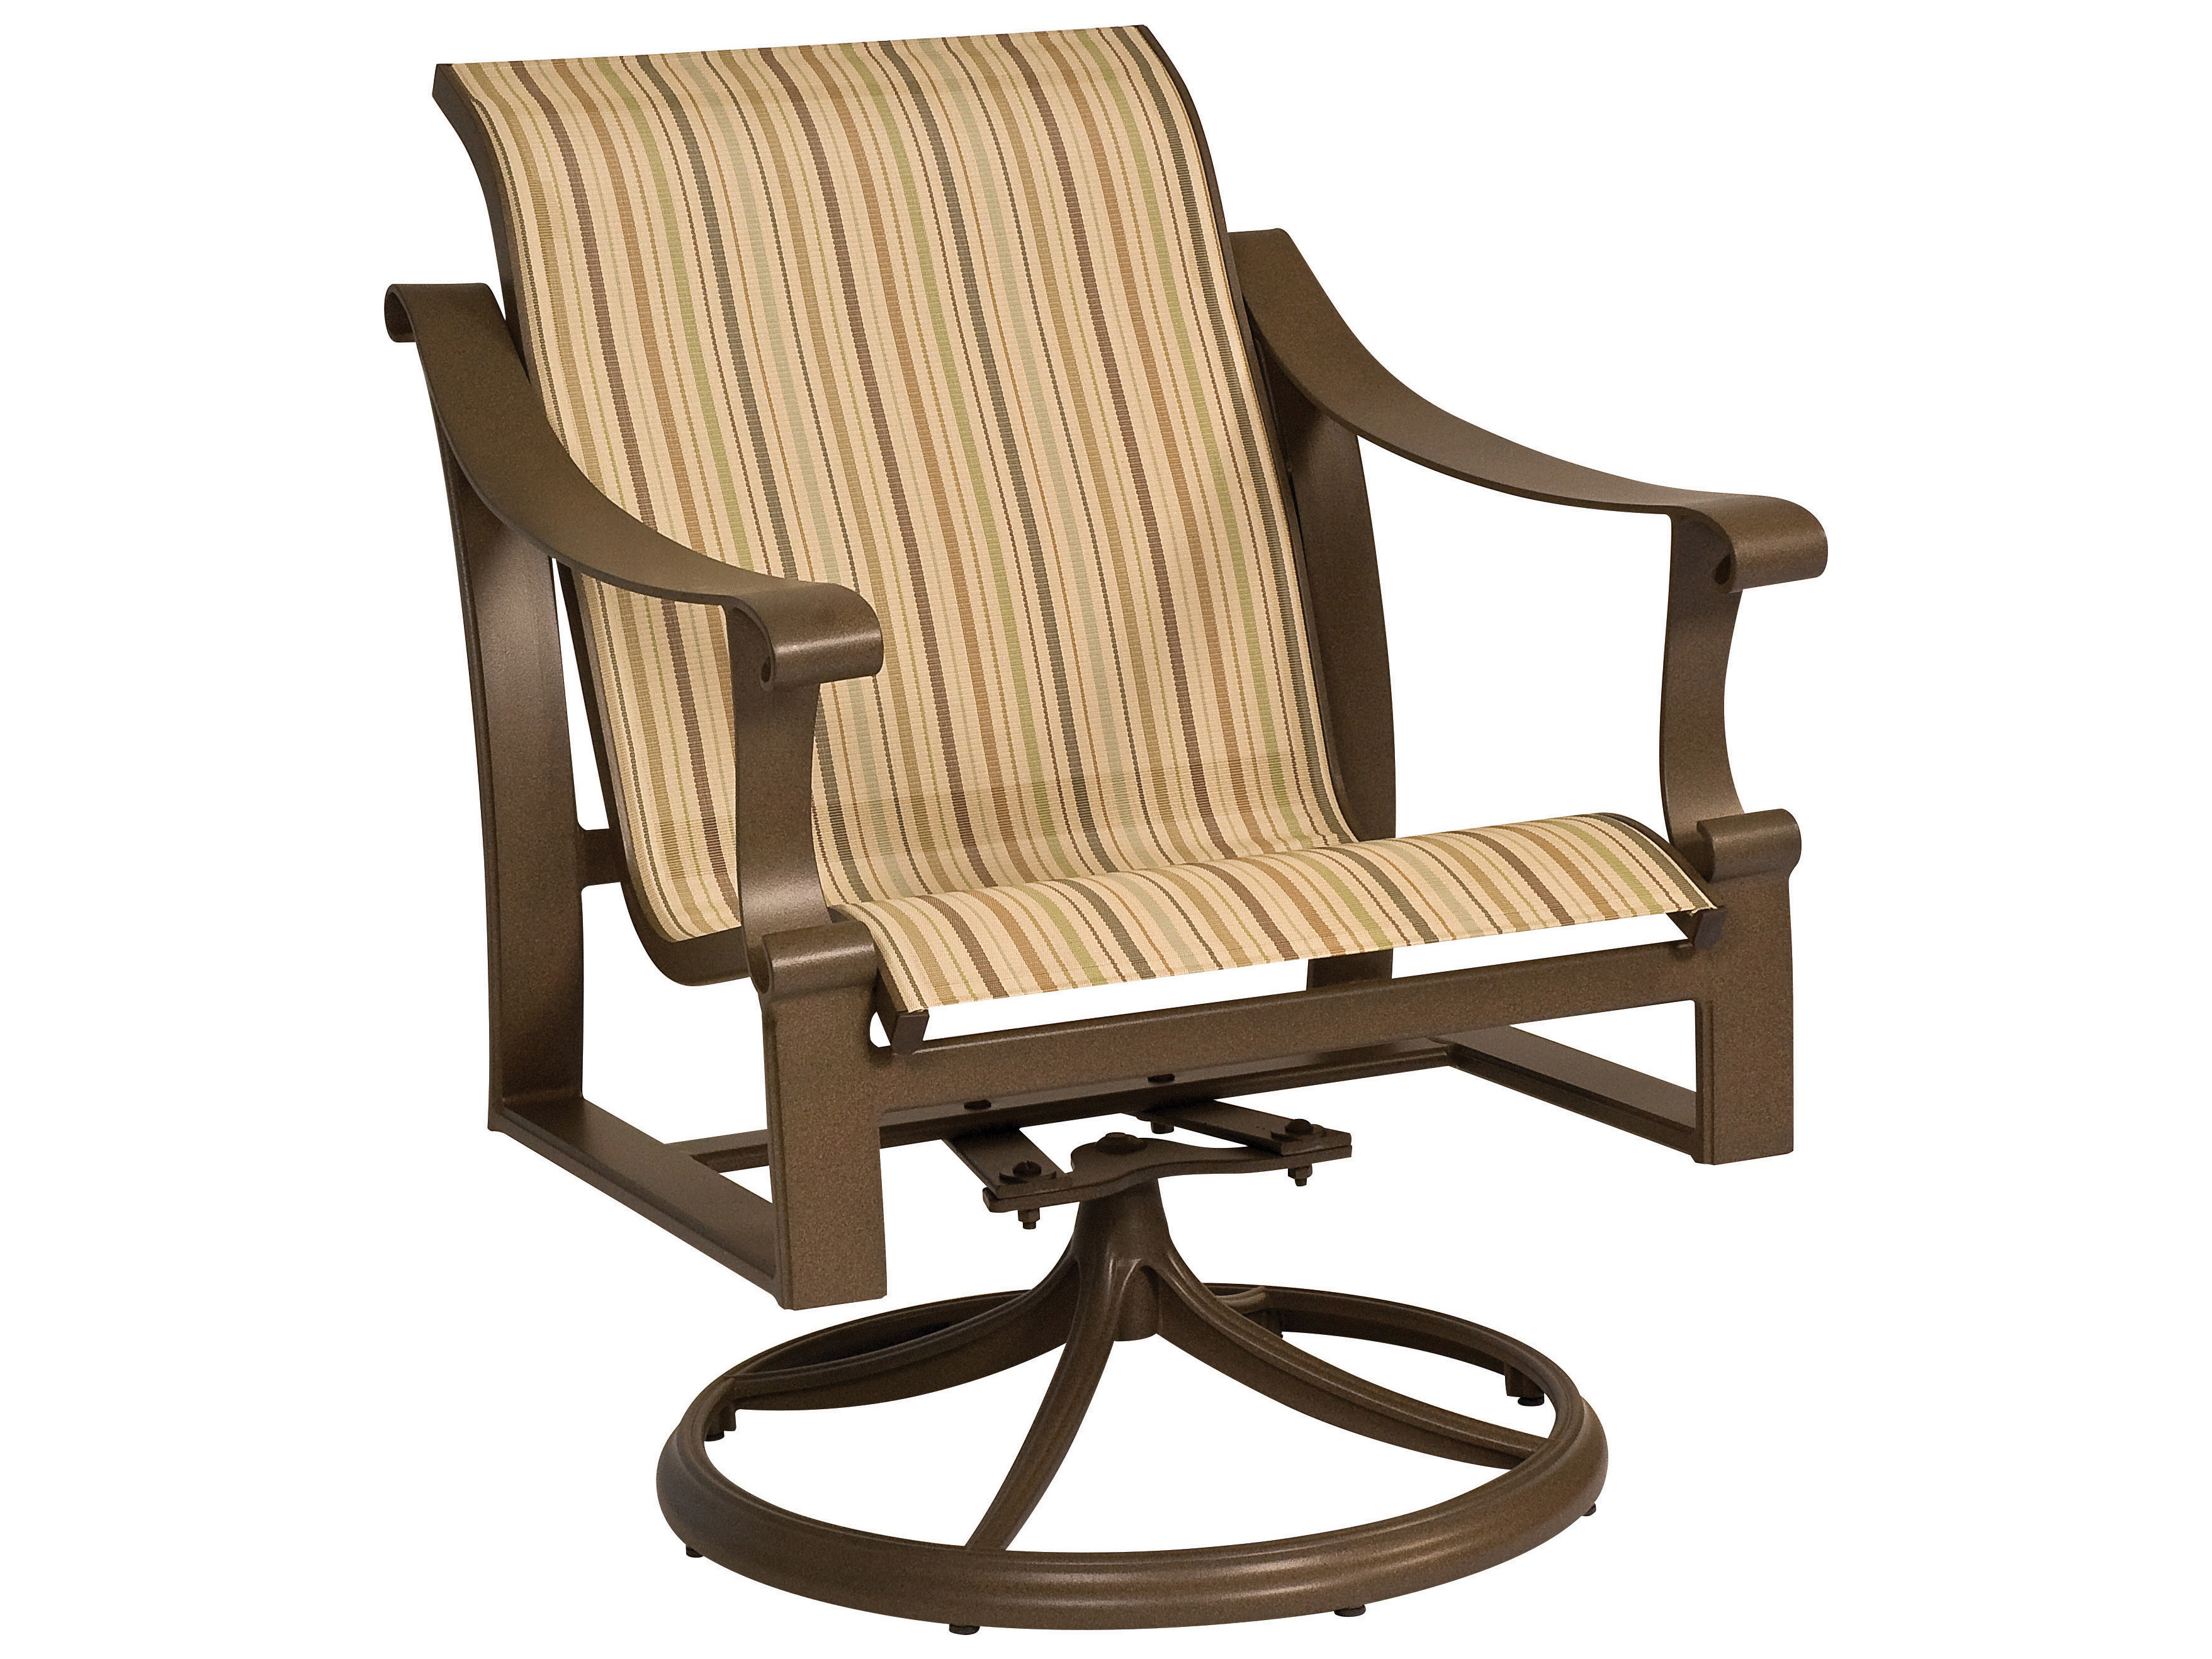 Lakeside padded sling aluminum outdoor furniture by for Outdoor furniture virginia beach